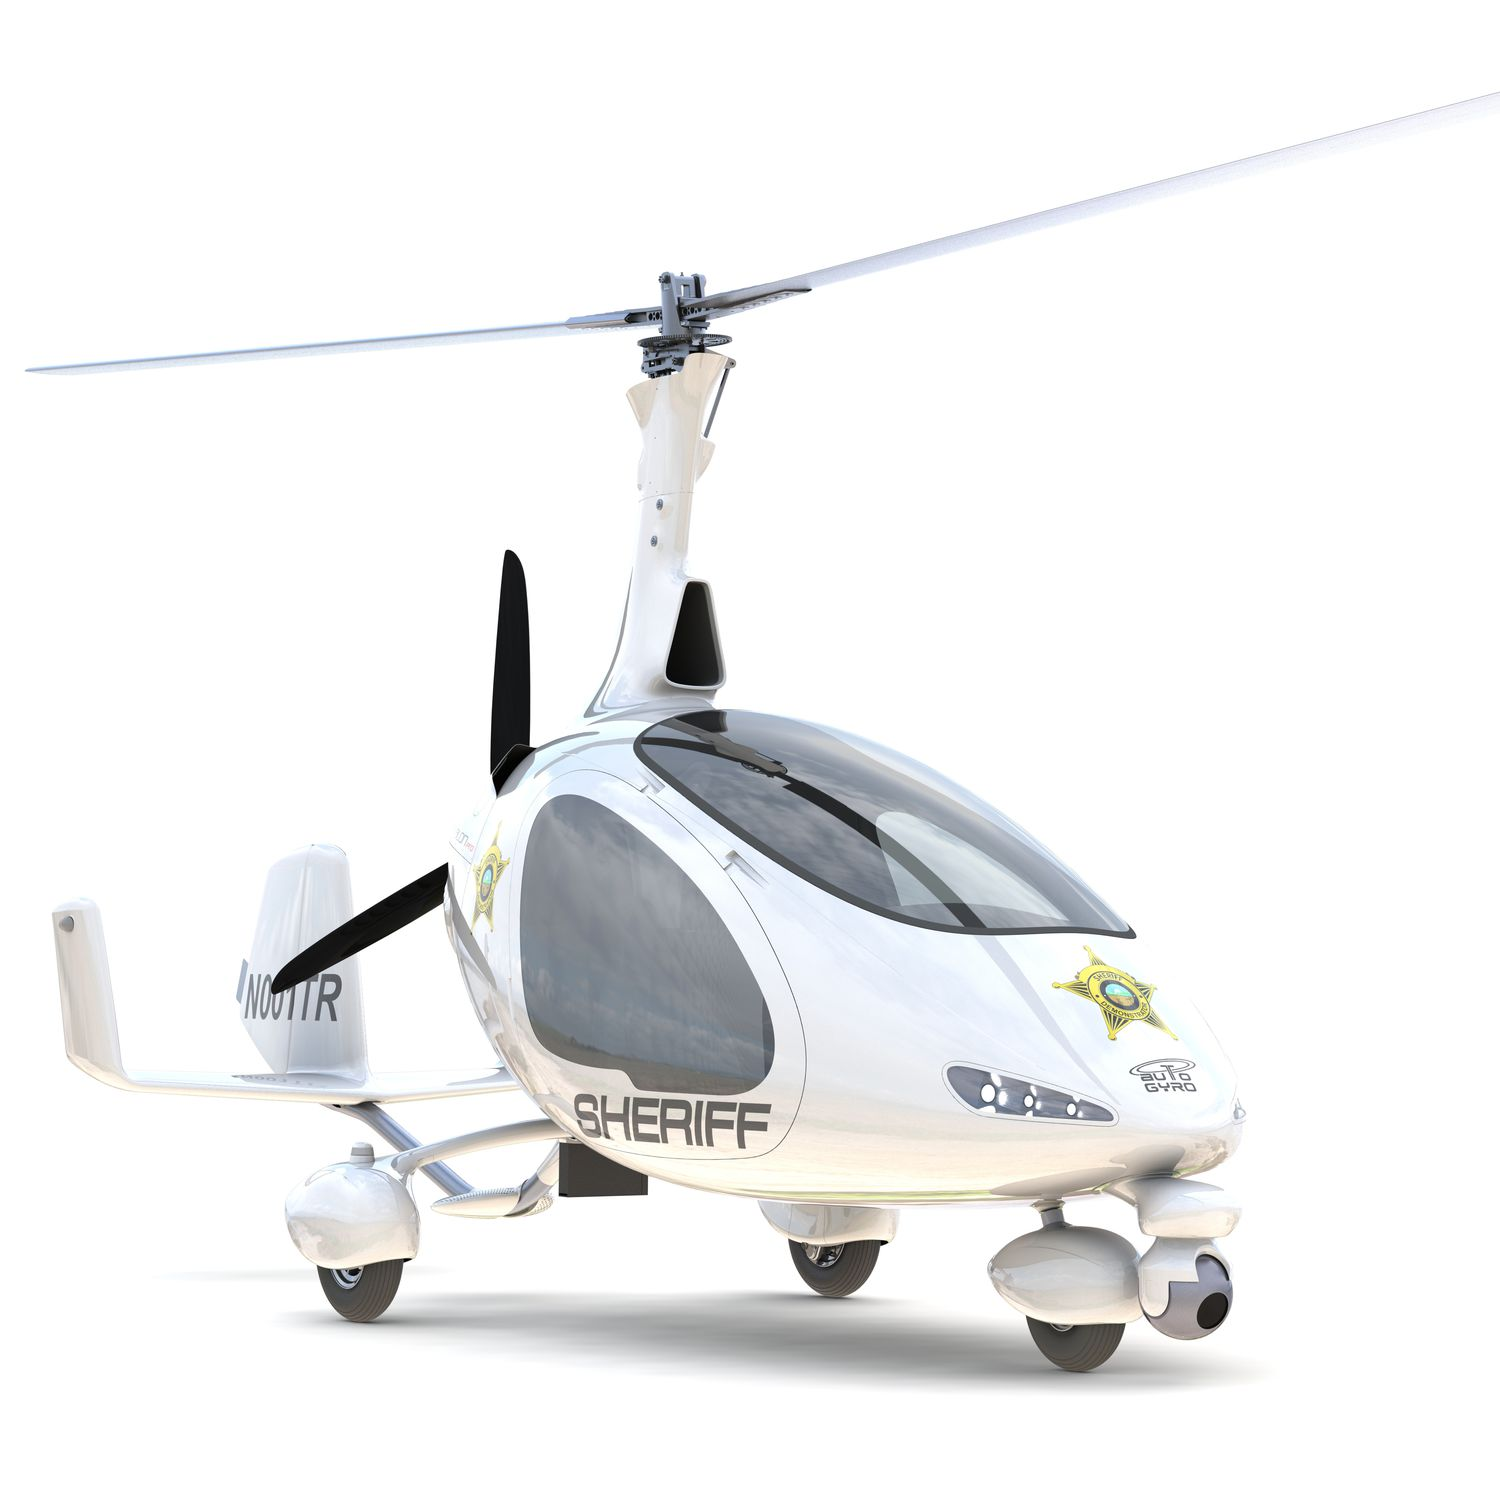 Two-seater gyroplane / 4-stroke engine / closed canopy / side-by-side - CavalonPRO  sc 1 st  AeroExpo & Two-seater gyroplane / 4-stroke engine / closed canopy / side-by ...